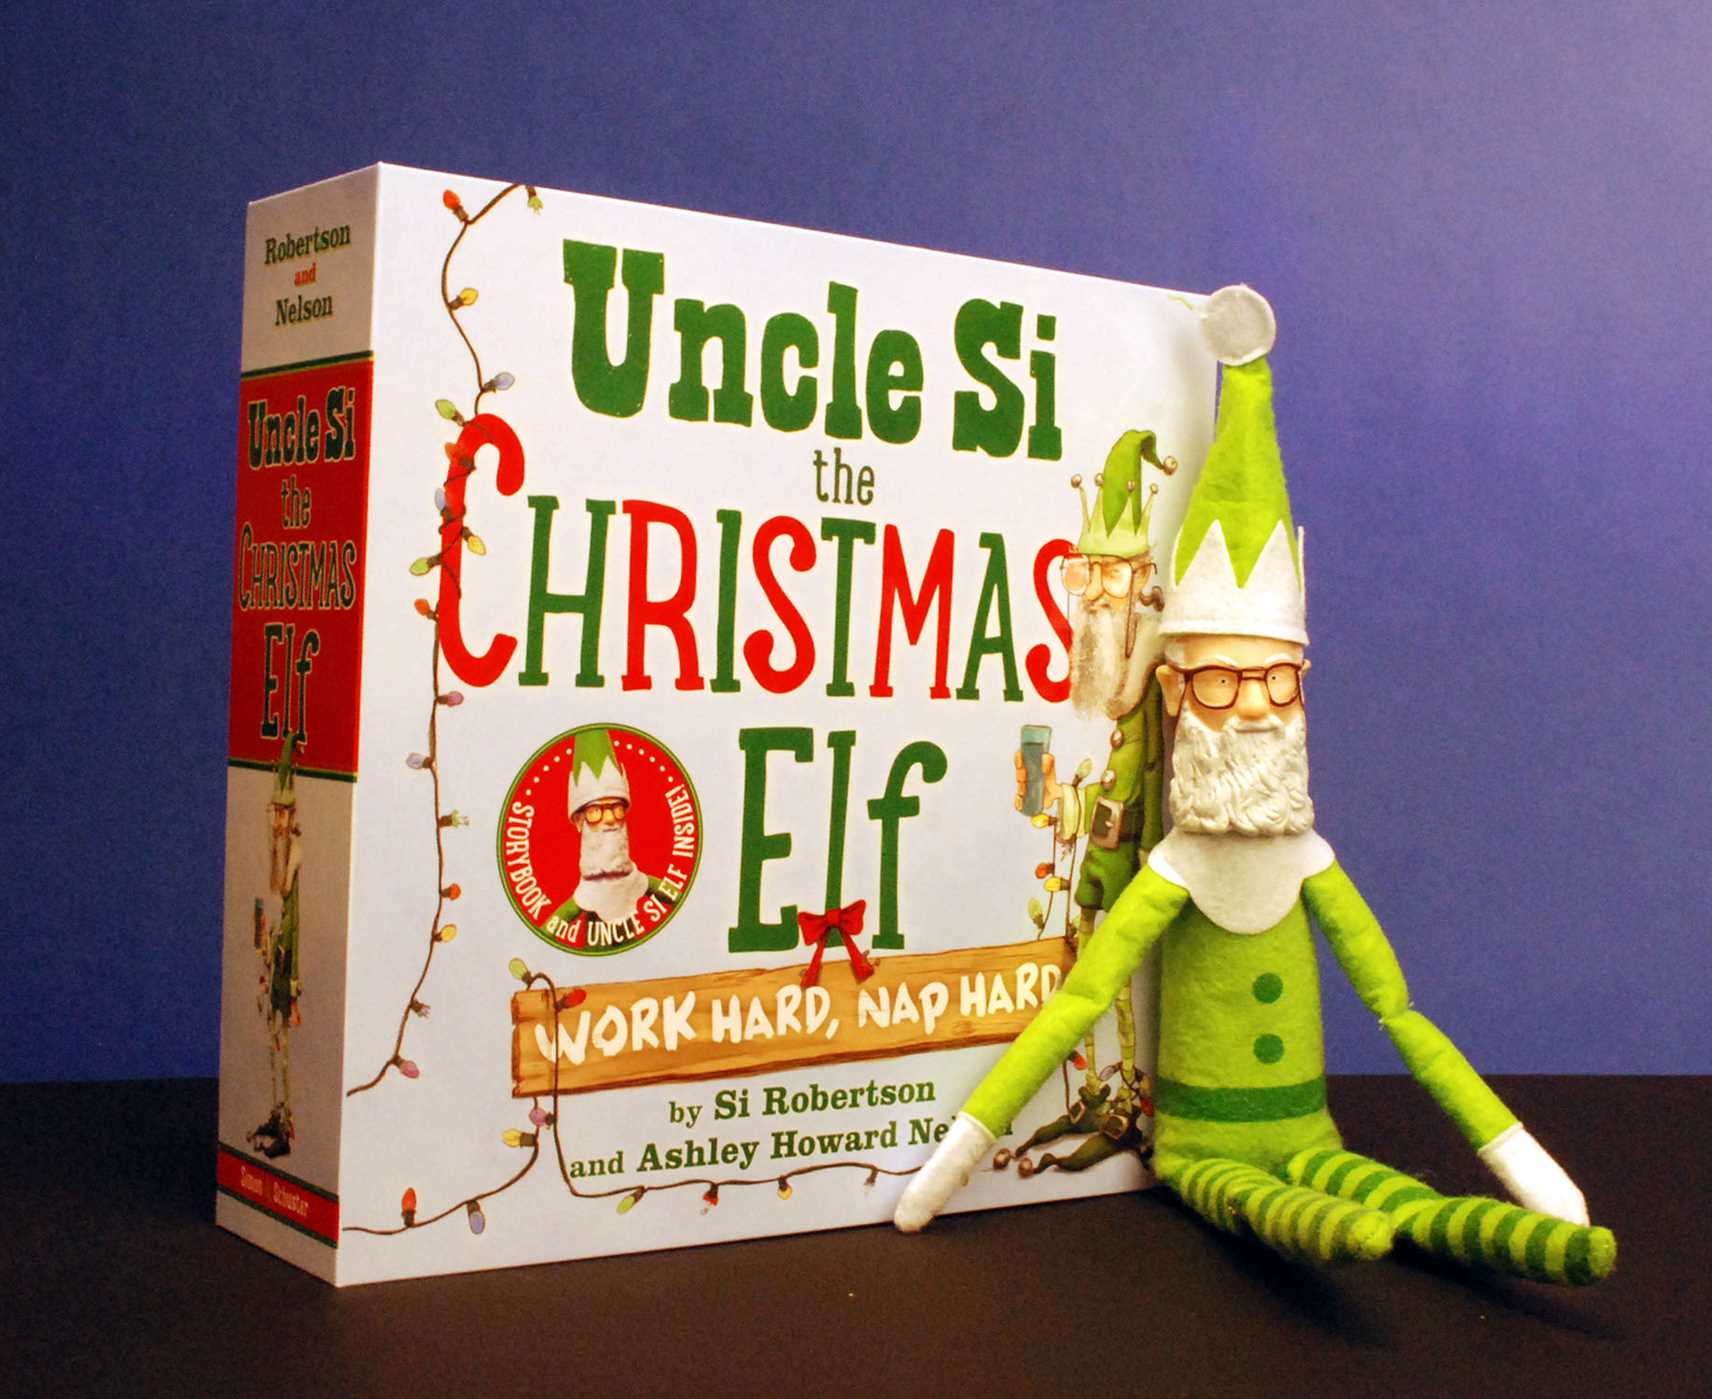 Uncle-si-the-christmas-elf-9781481418218_hr